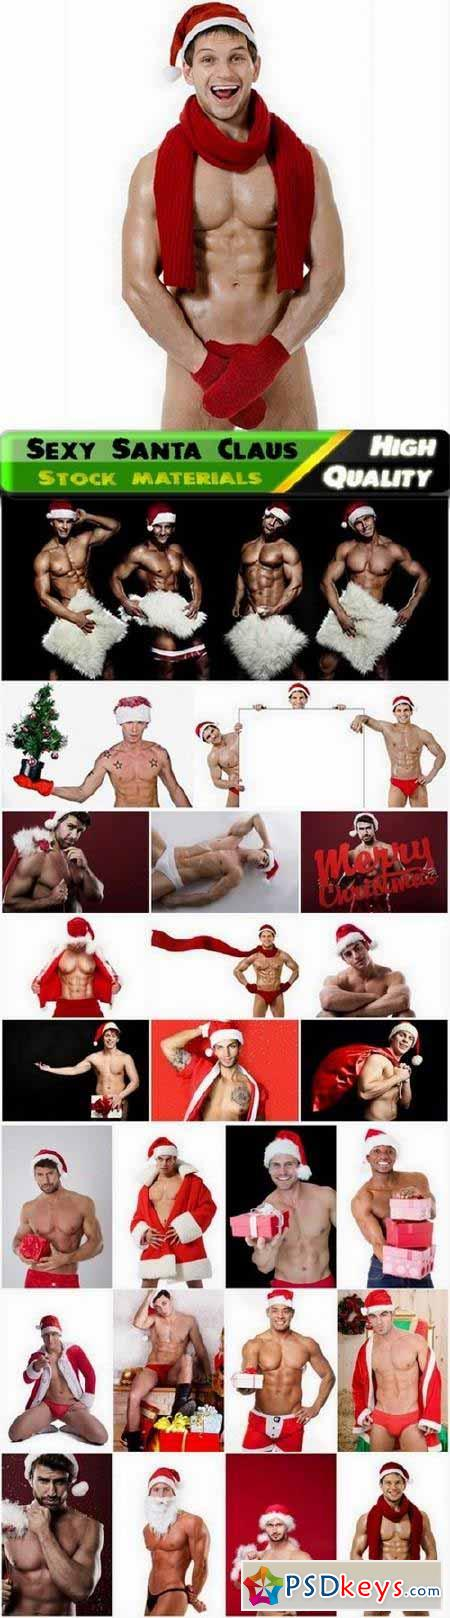 Sexy Santa Claus with presents - 25 HQ Jpg